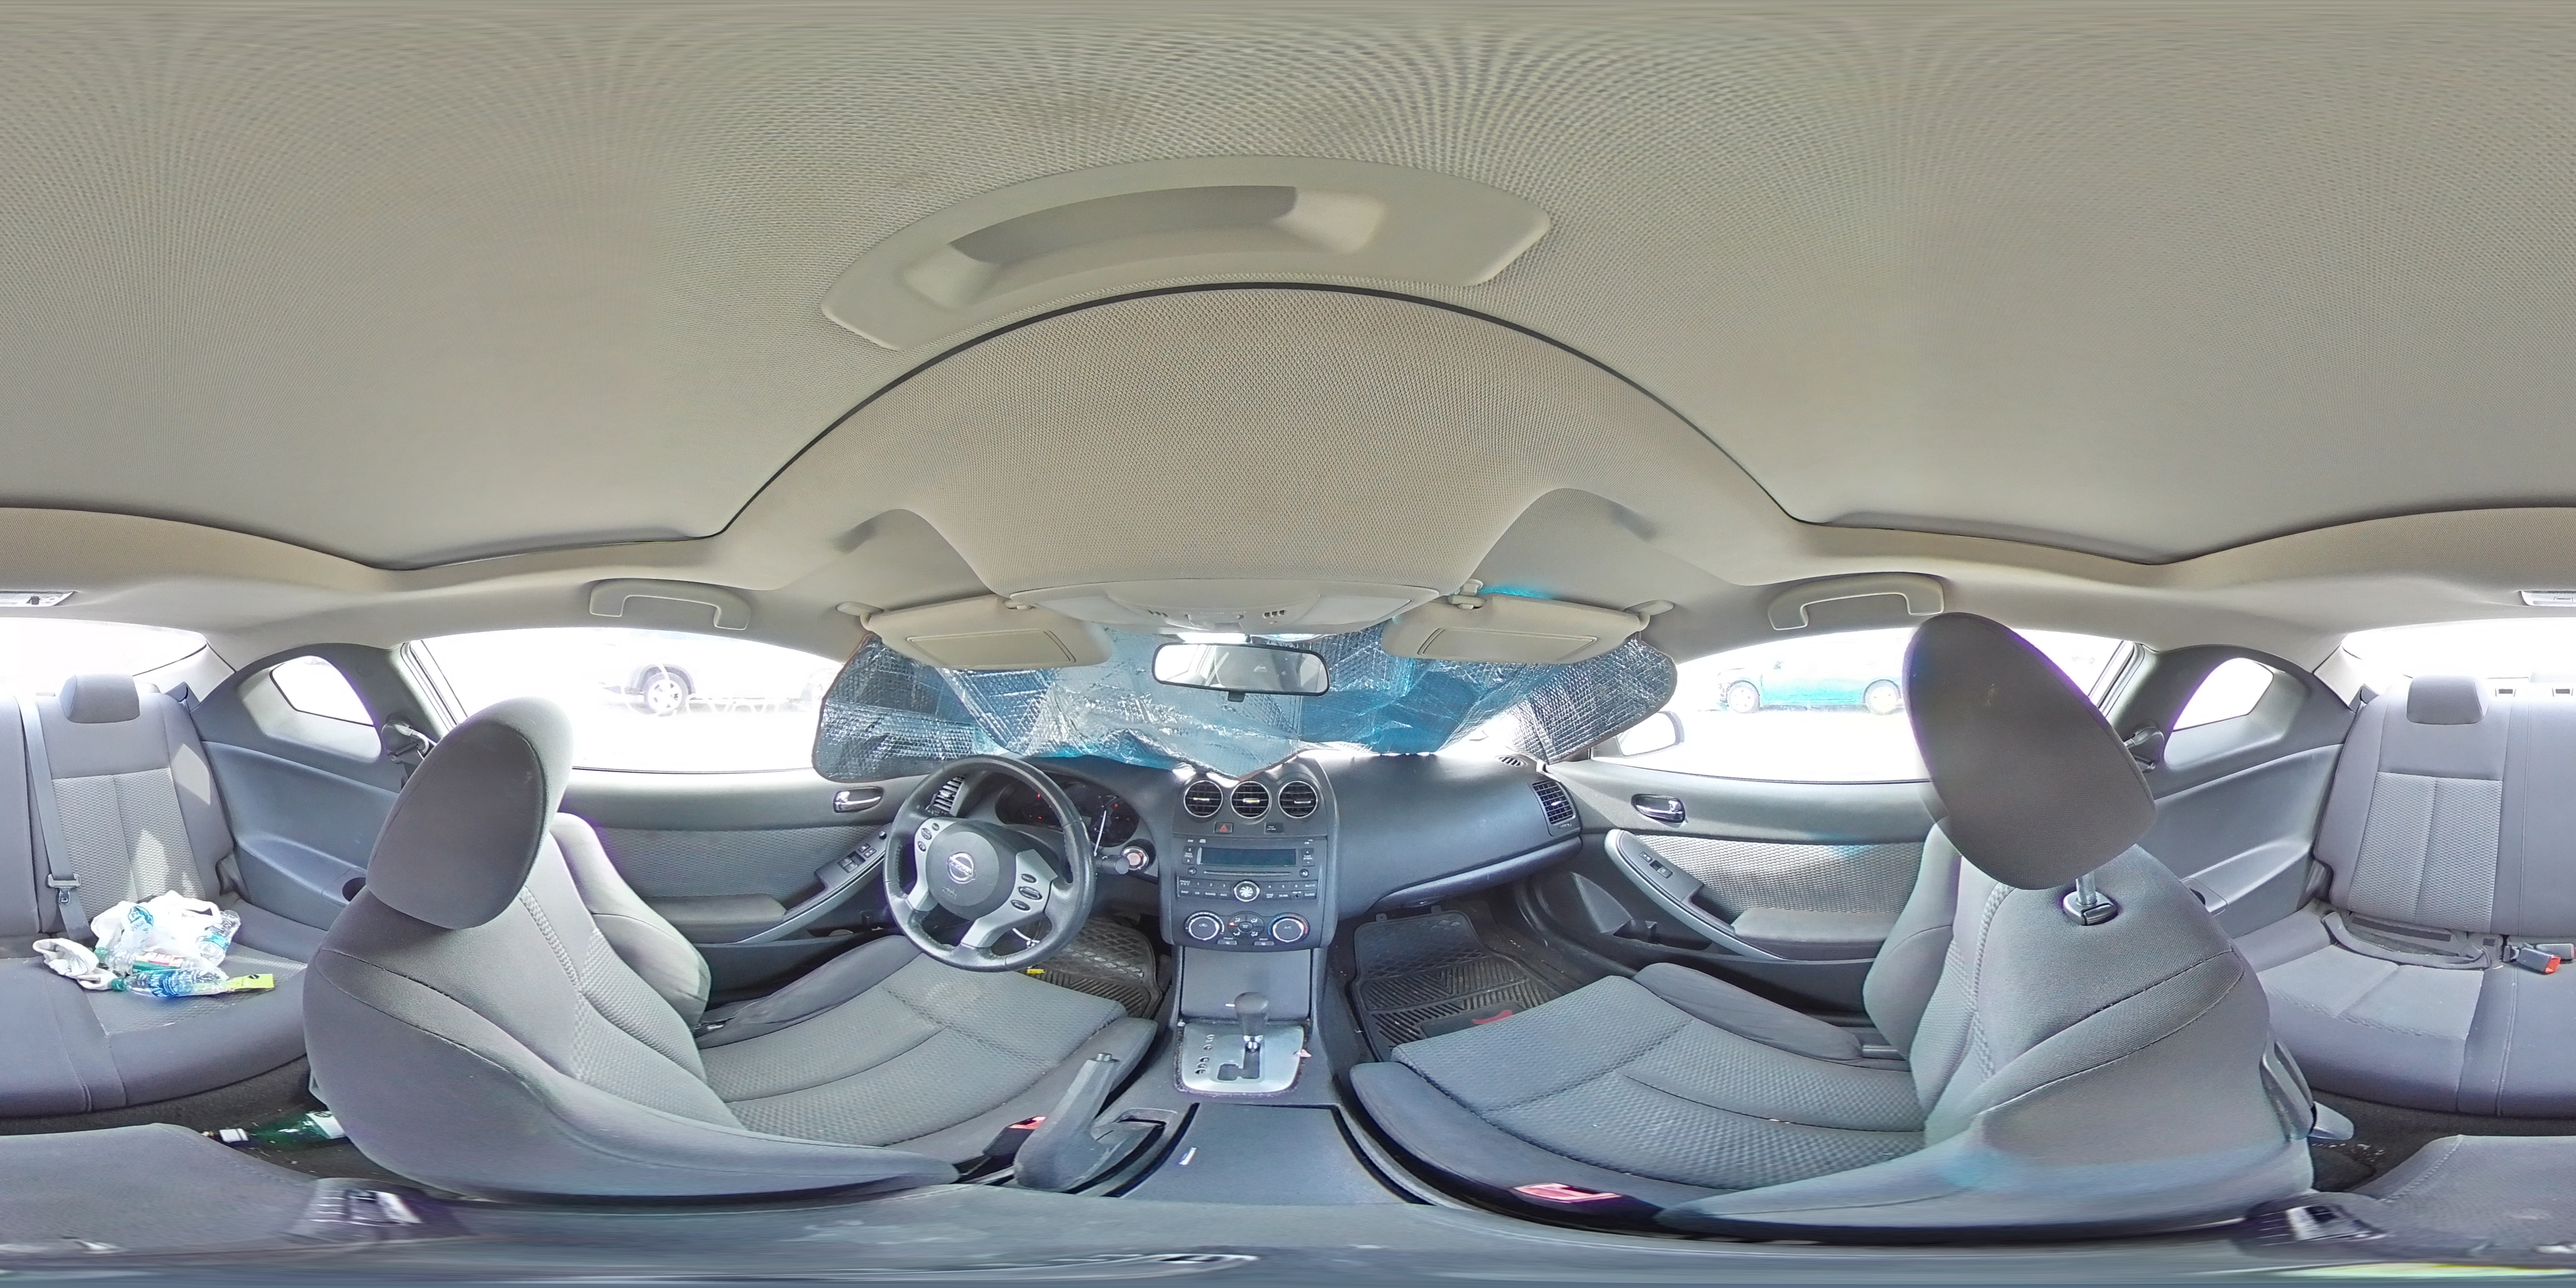 2008 NISSAN ALTIMA 3.5 - Other View